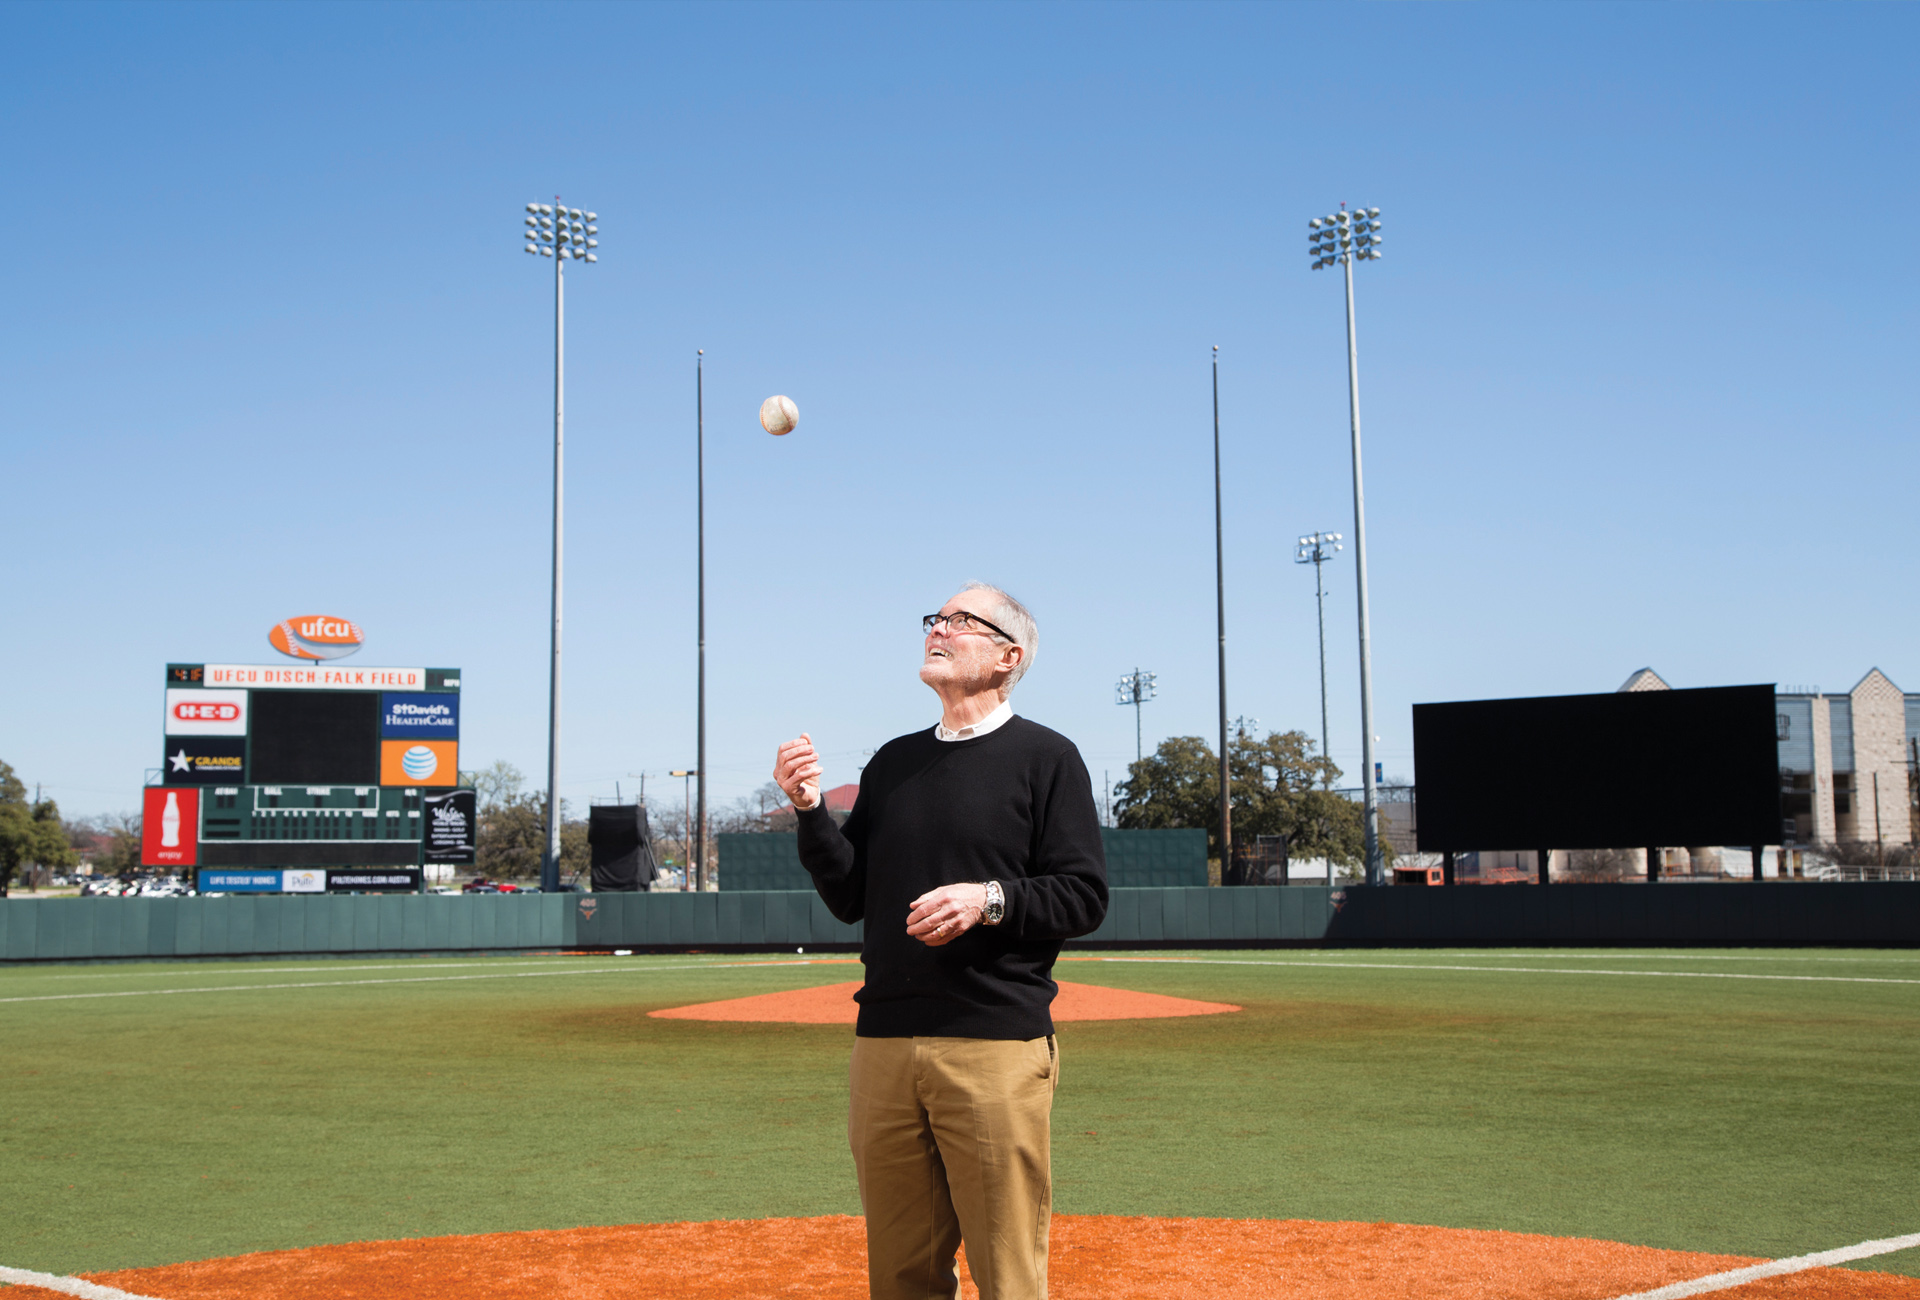 Larry Carver stands on the pitcher's mound of the UFCU Disch-Faulk field and tosses a baseball up in the air.